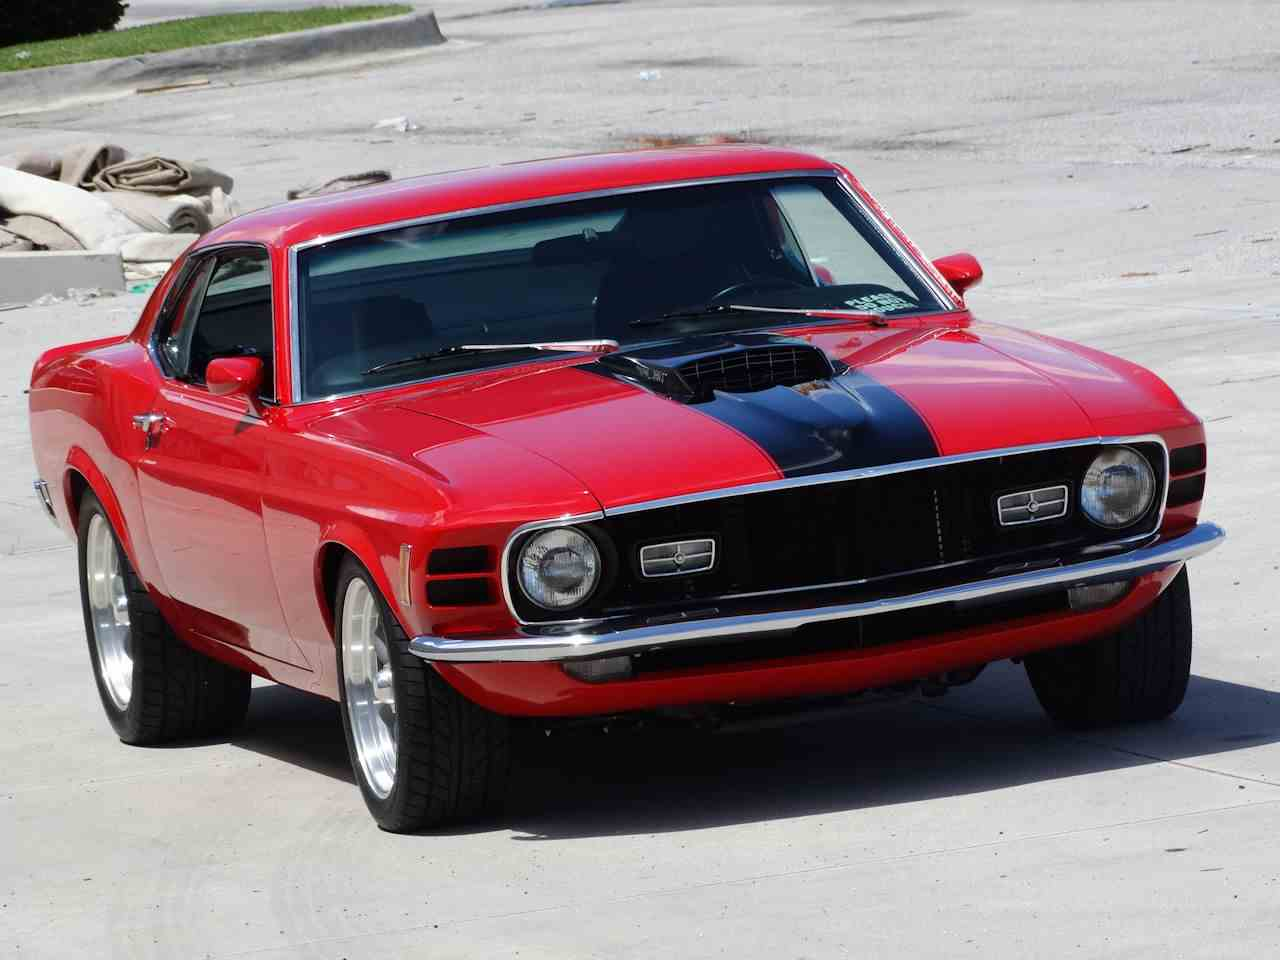 Large Picture of '70 Ford Mustang located in Florida - $60,000.00 - LG4A